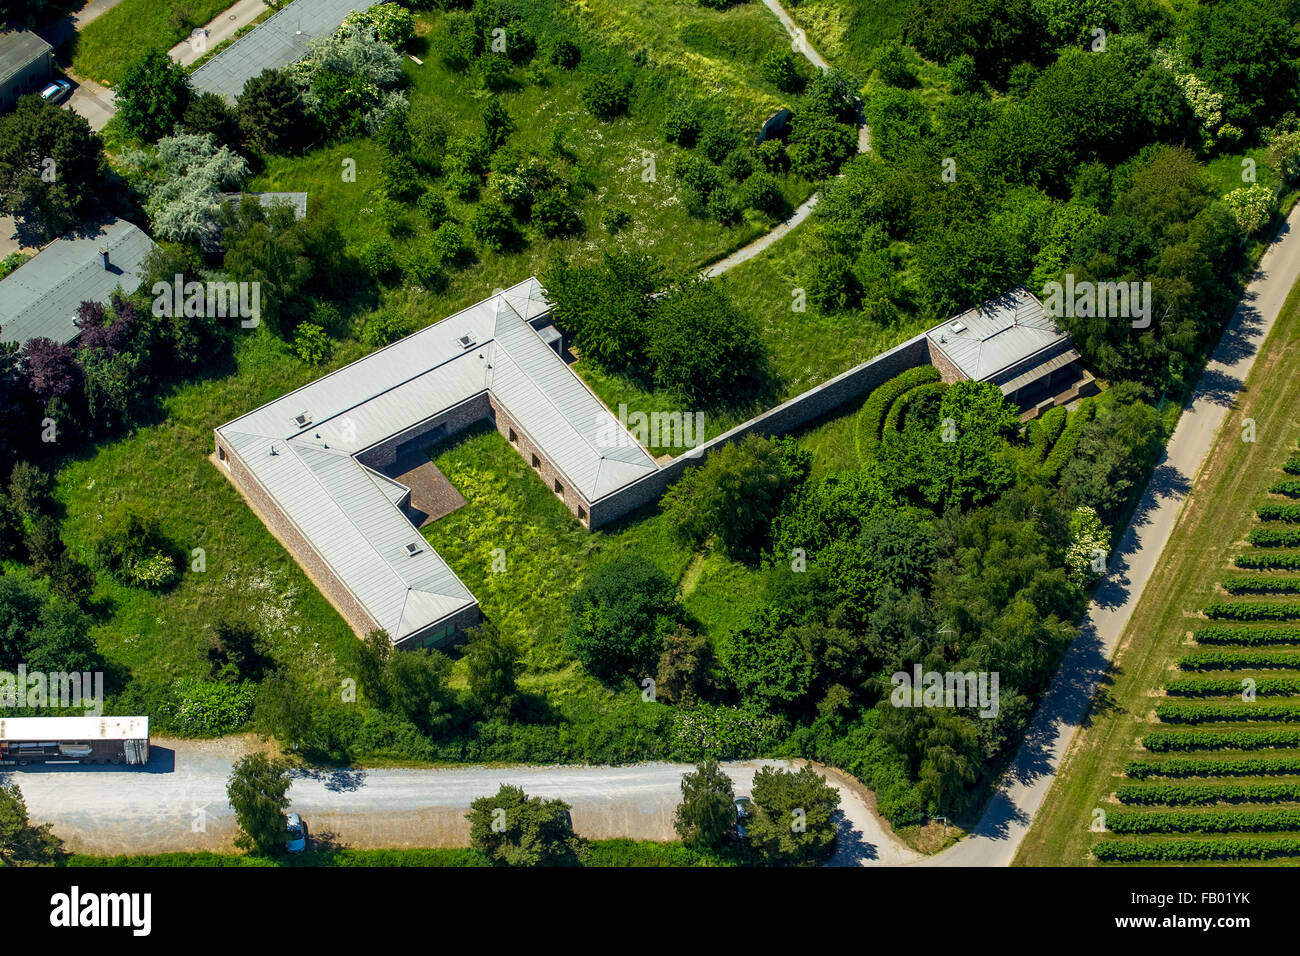 aerial view, project by Karl-Heinrich Müller, art collector, Langen Foundation, former NATO base in the midst - Stock Image